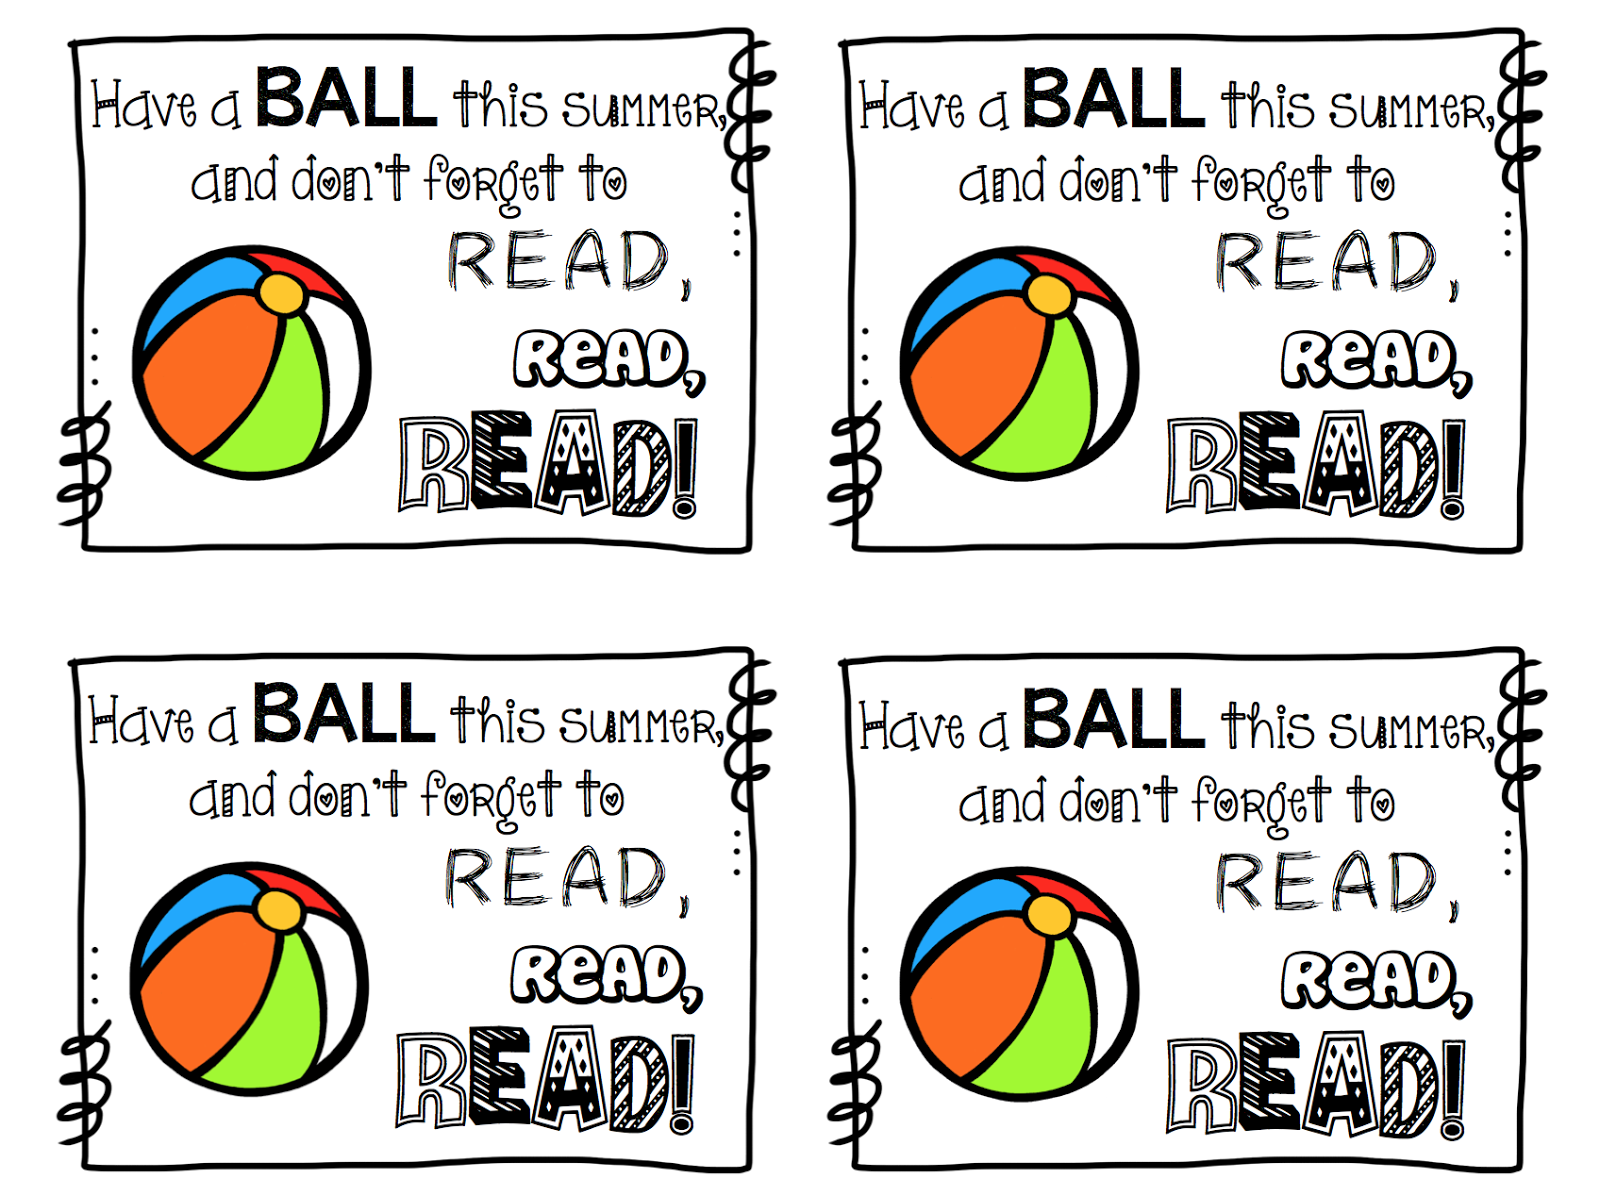 It's just an image of Vibrant Have a Ball This Summer Printable